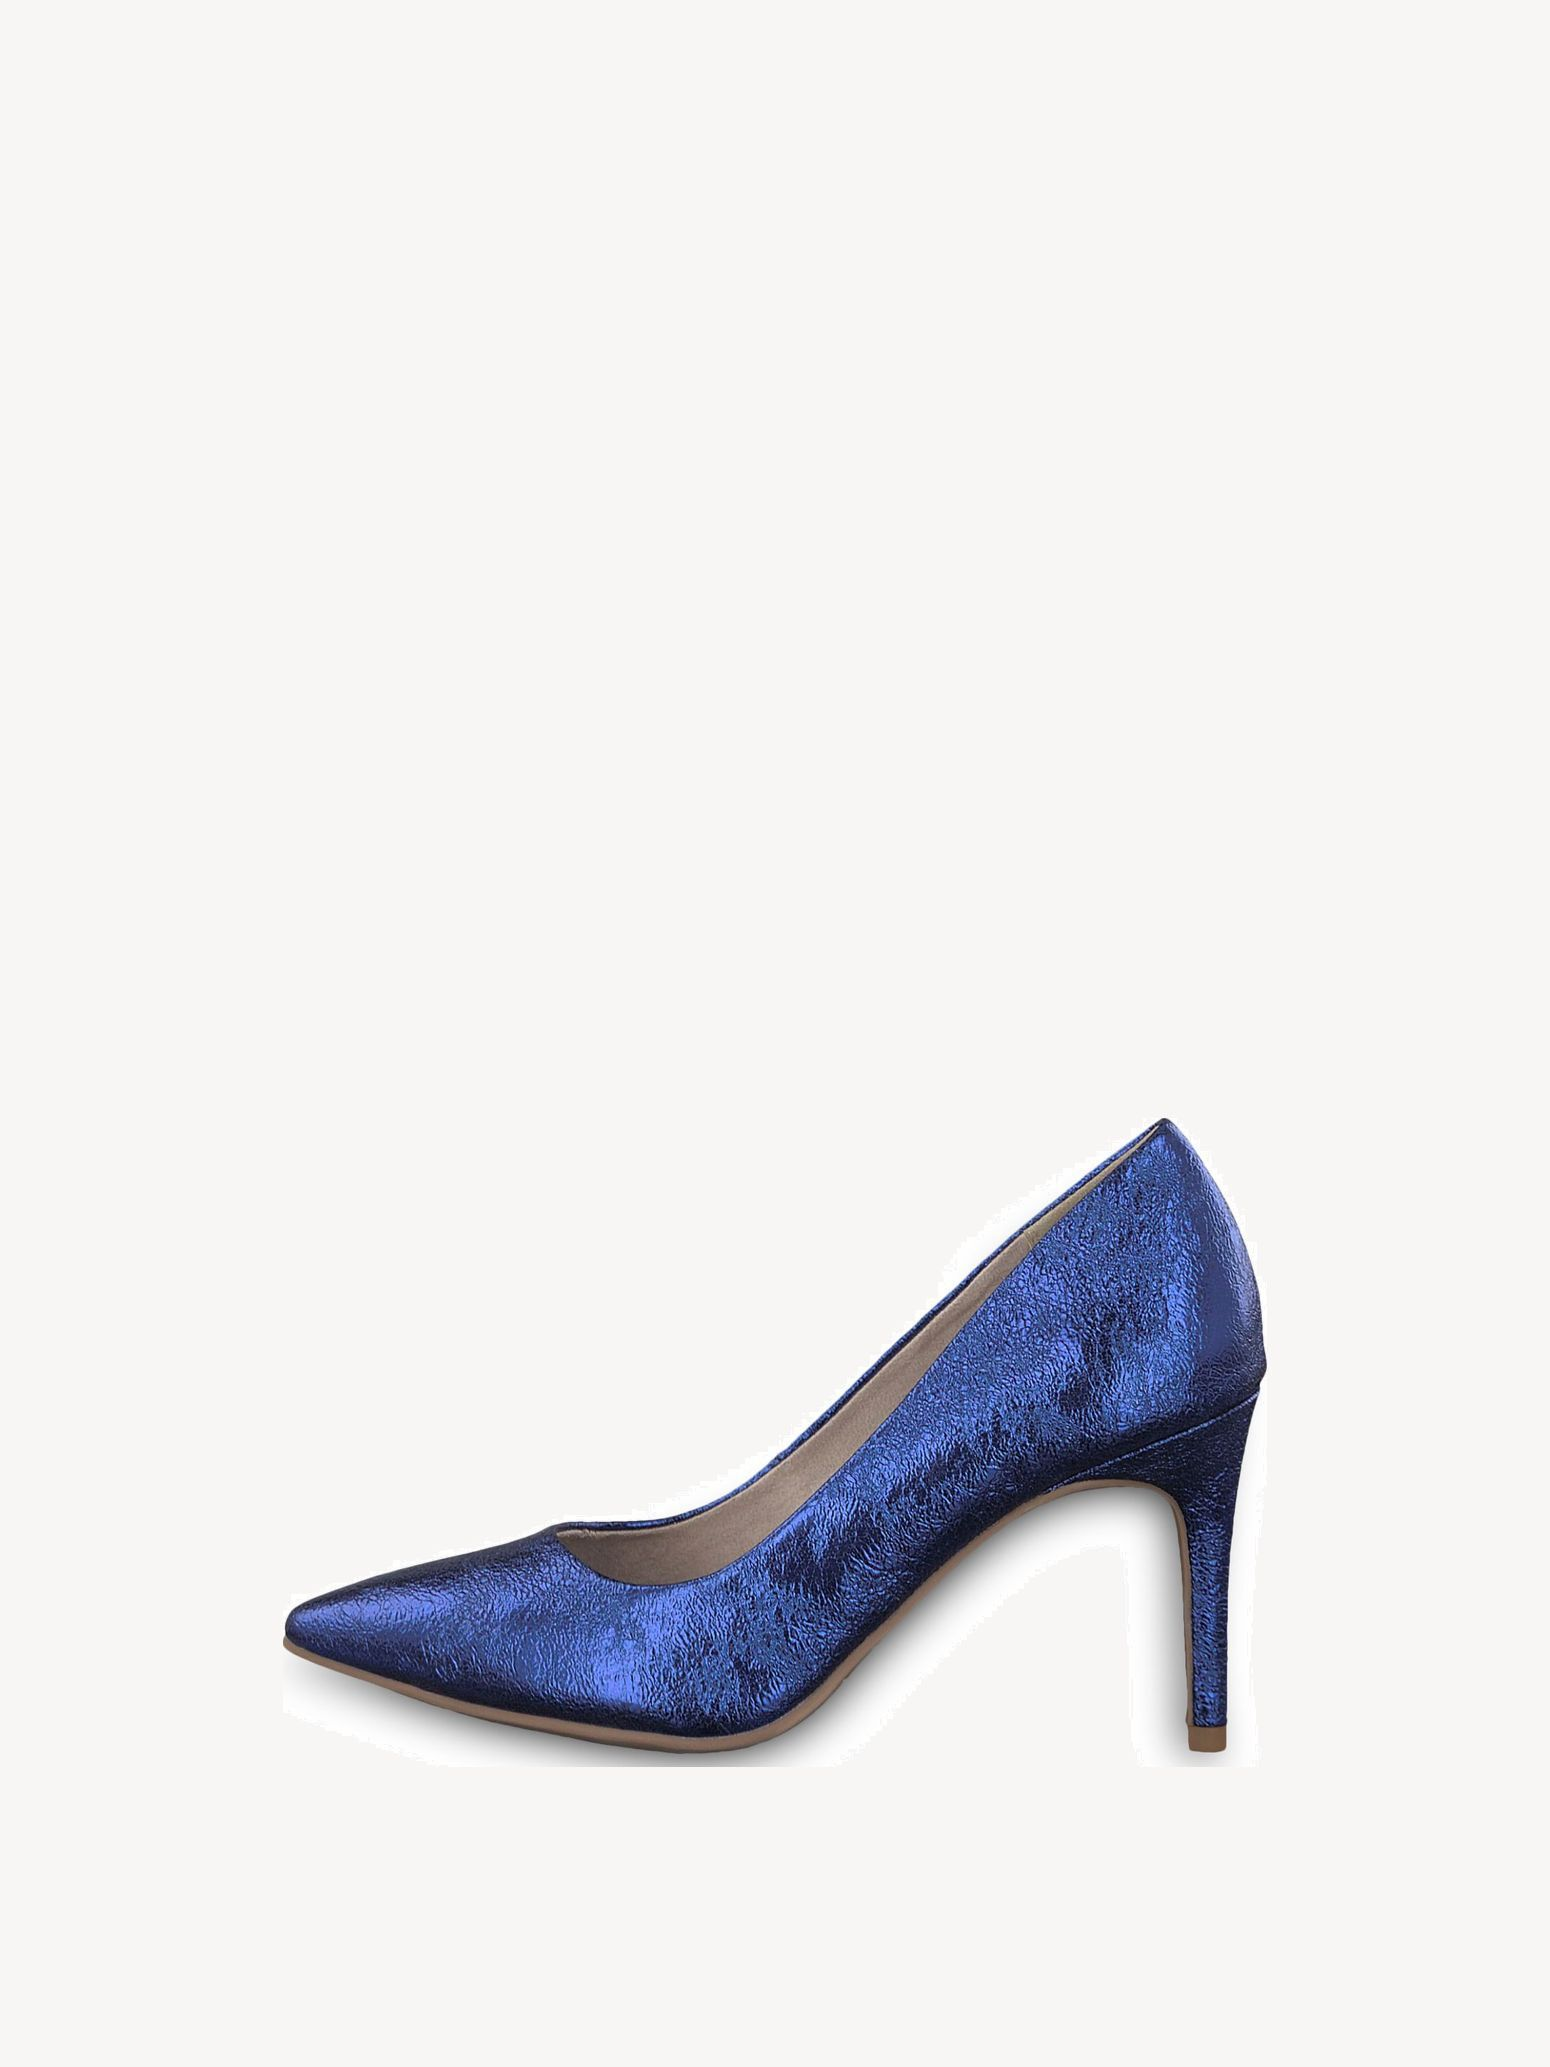 Tamaris Pumps in Blau: ab 34,95 € | Stylight